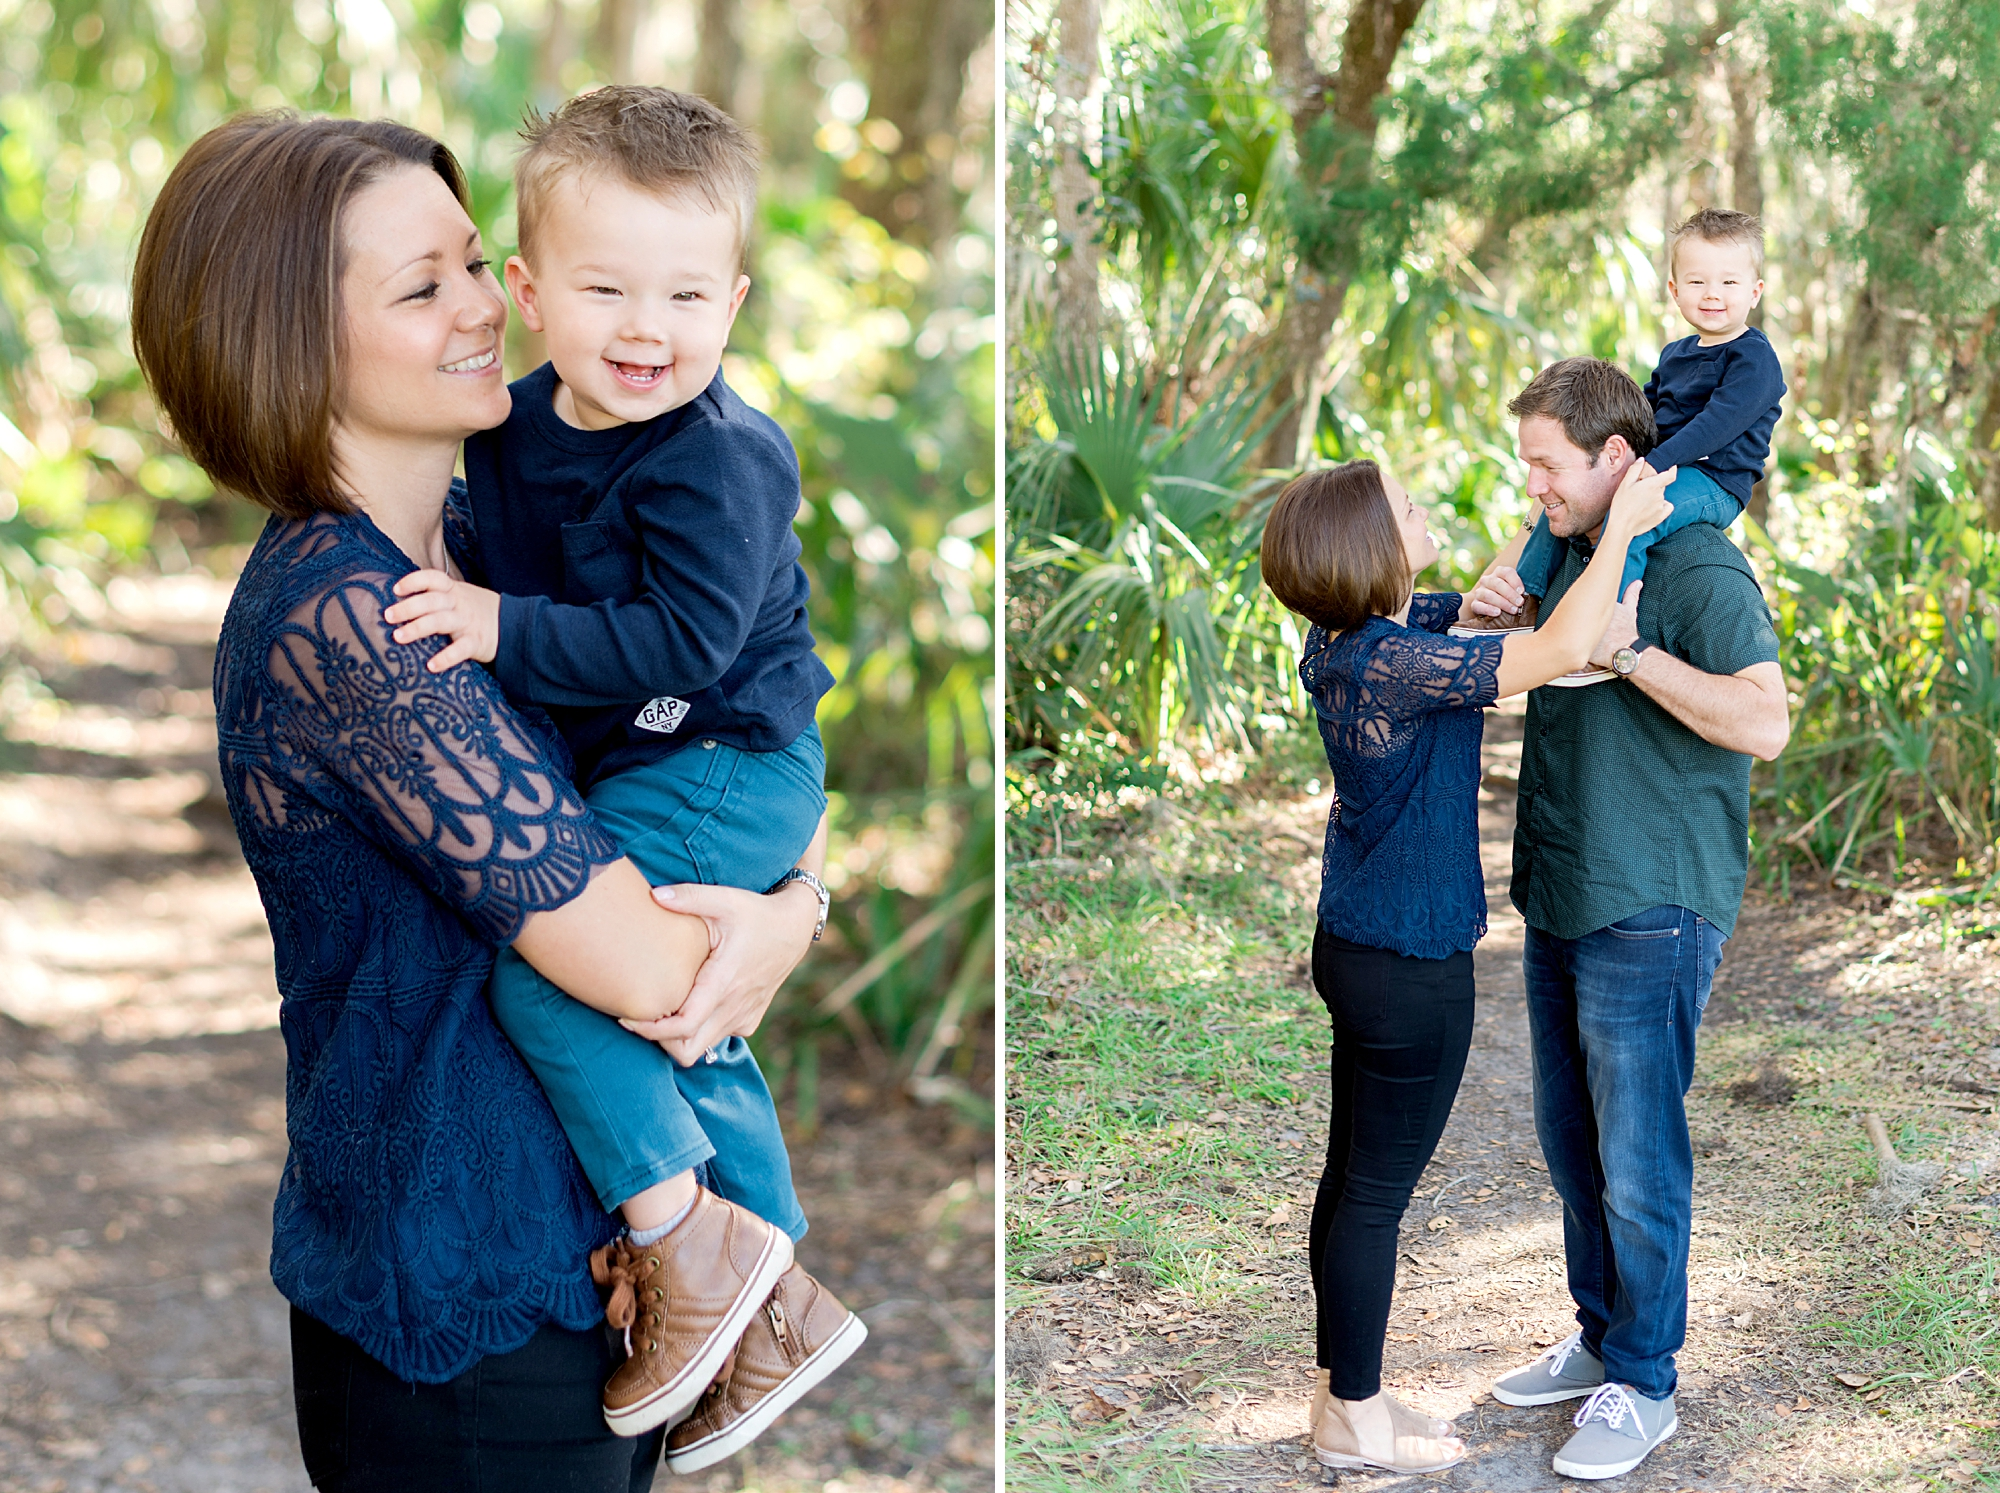 mommy and me photo ideas